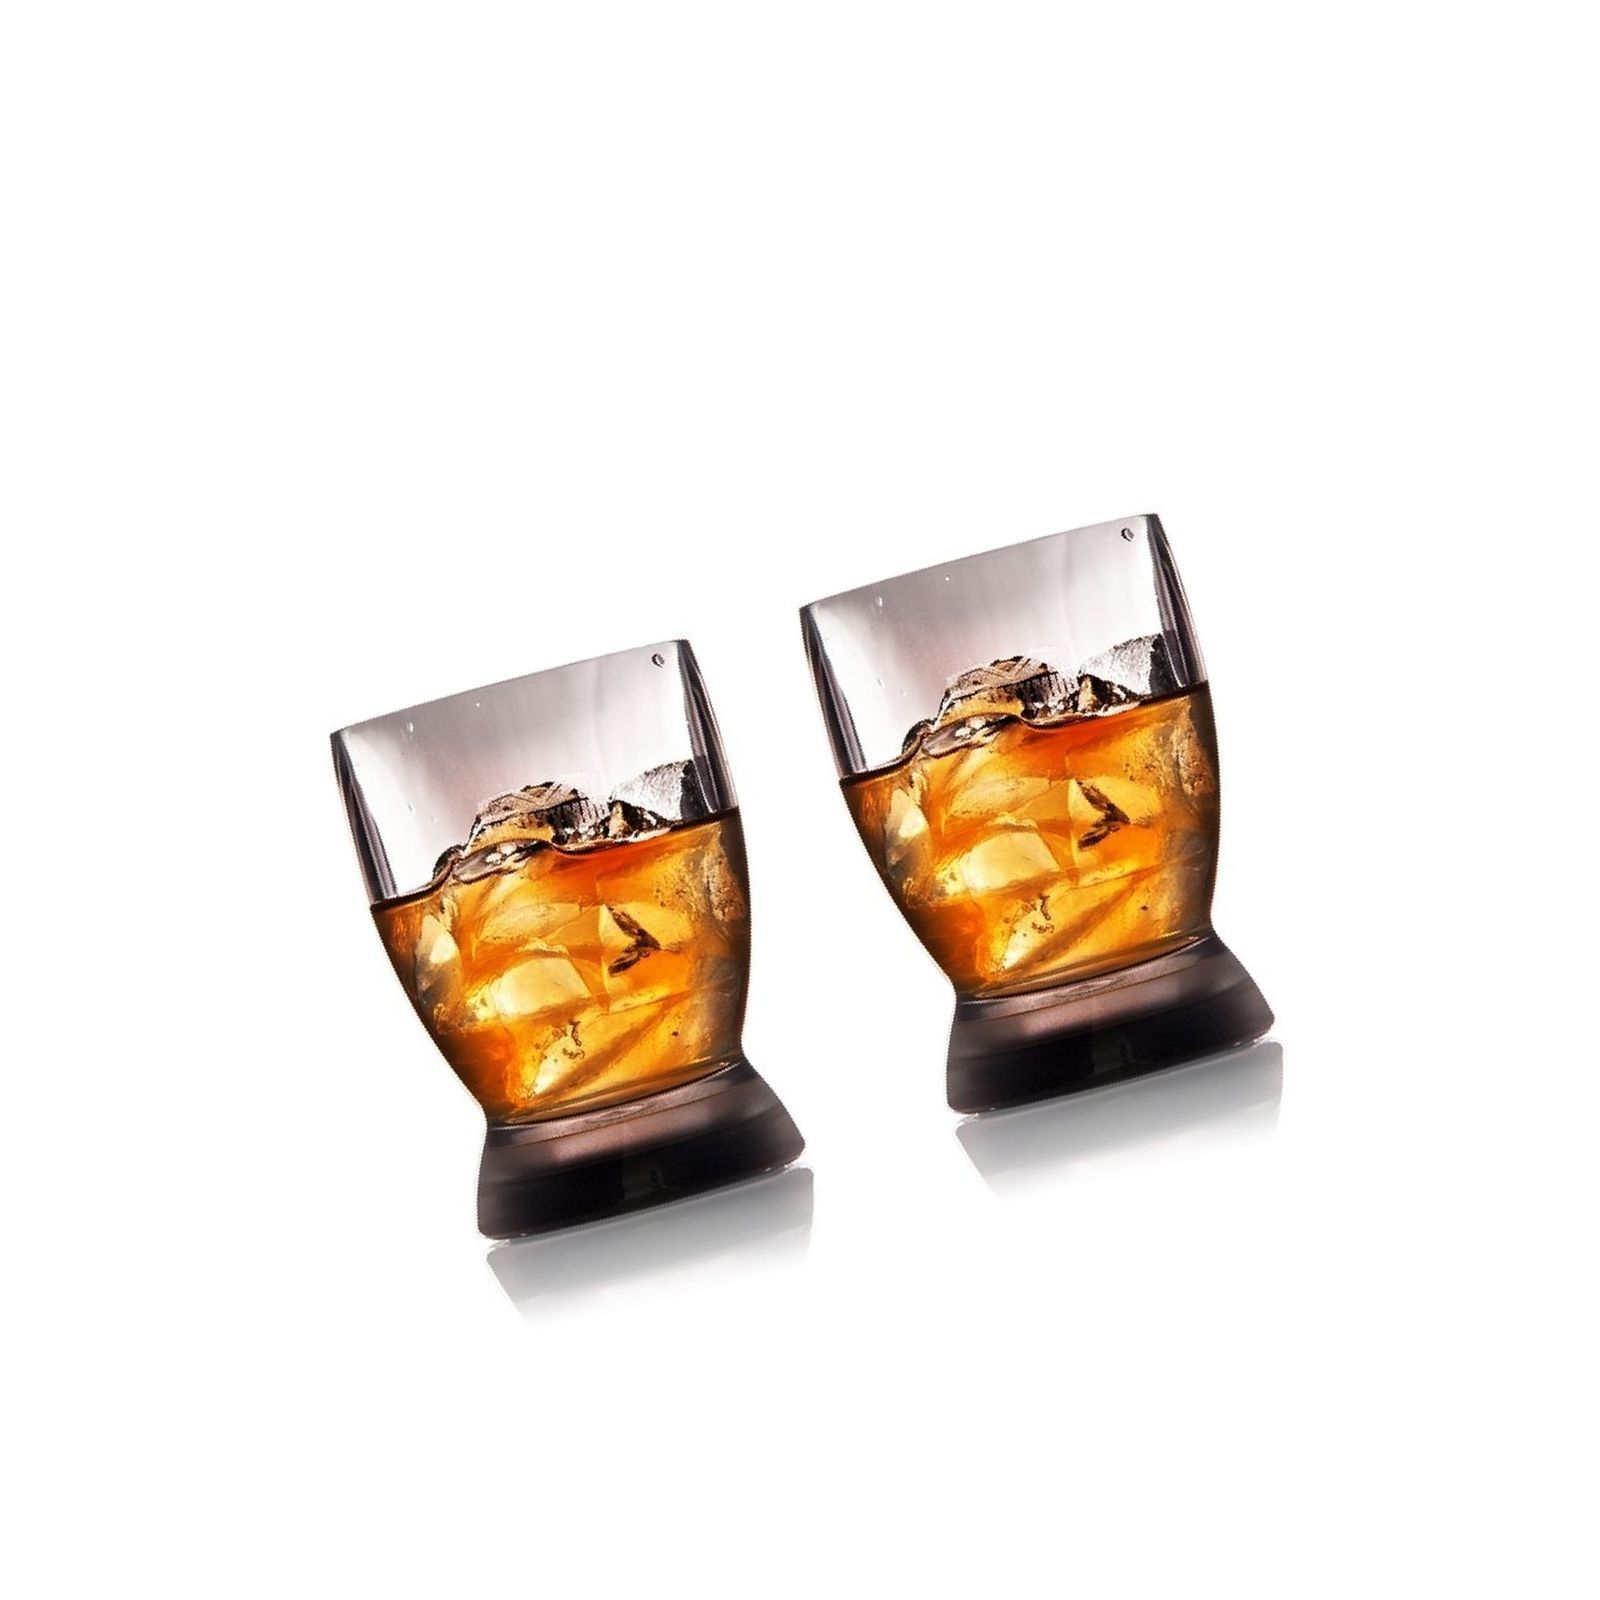 Mighty Mug Barware:  Set of 2 15 oz Double Old Fashioned / Stemless Wine Glas...